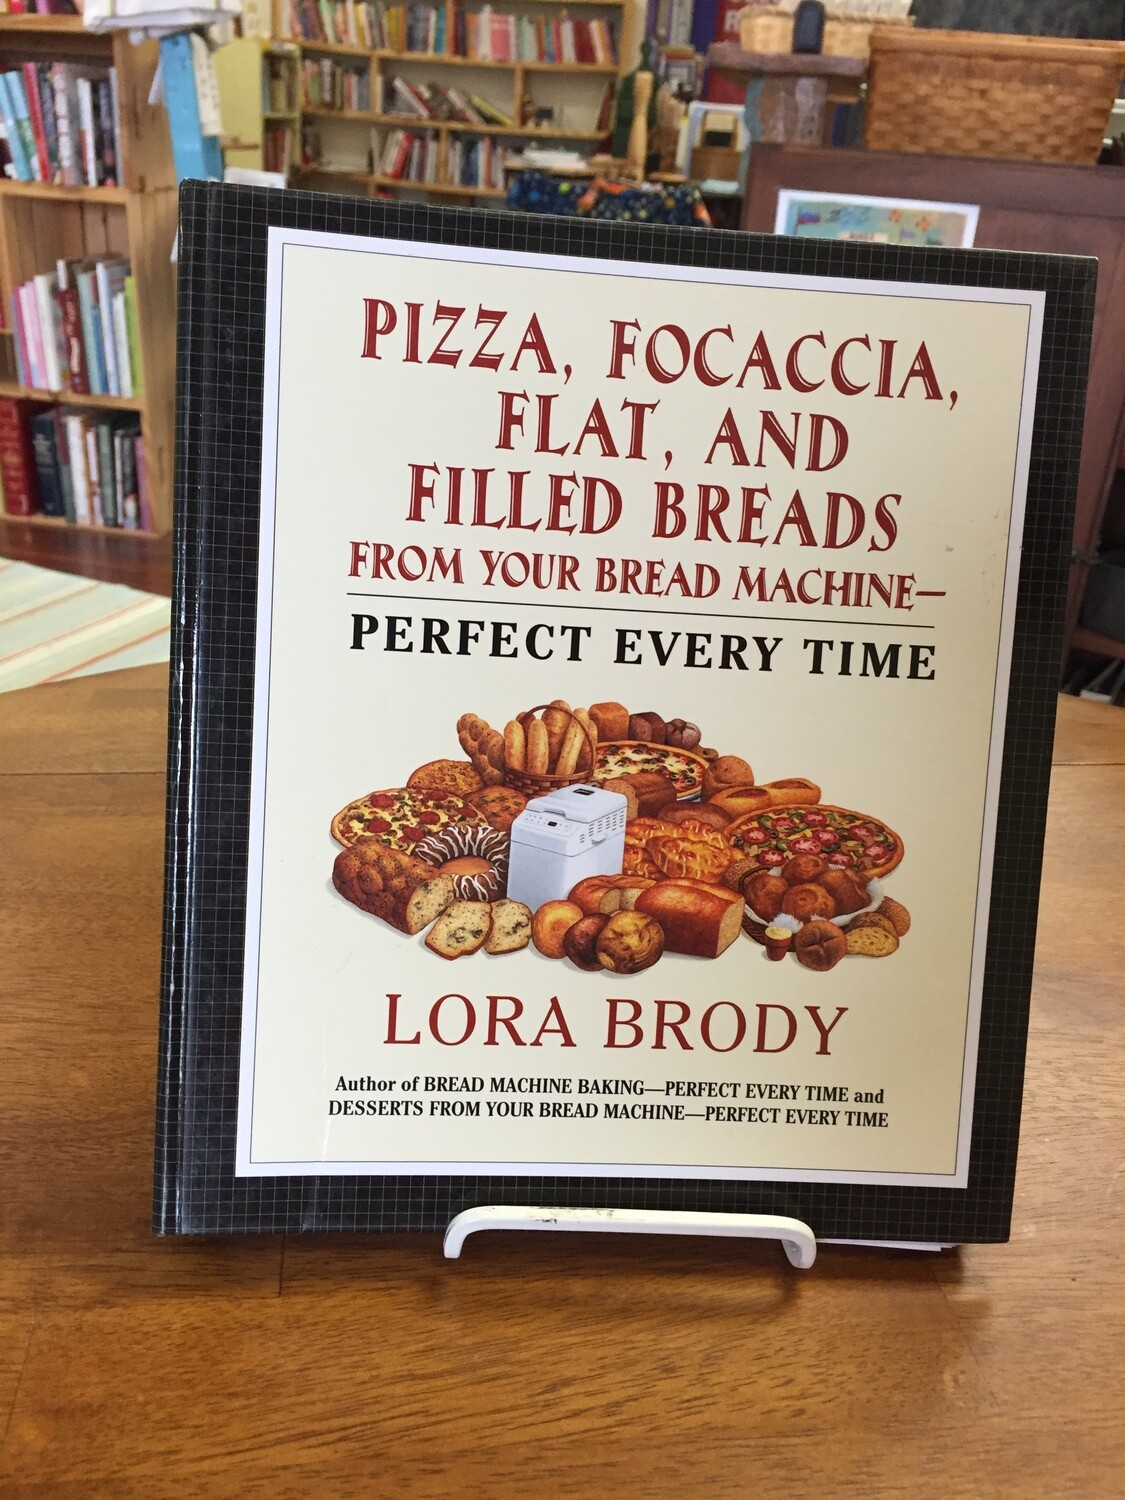 Pizza, Focaccia, Flat, and Filled Breads